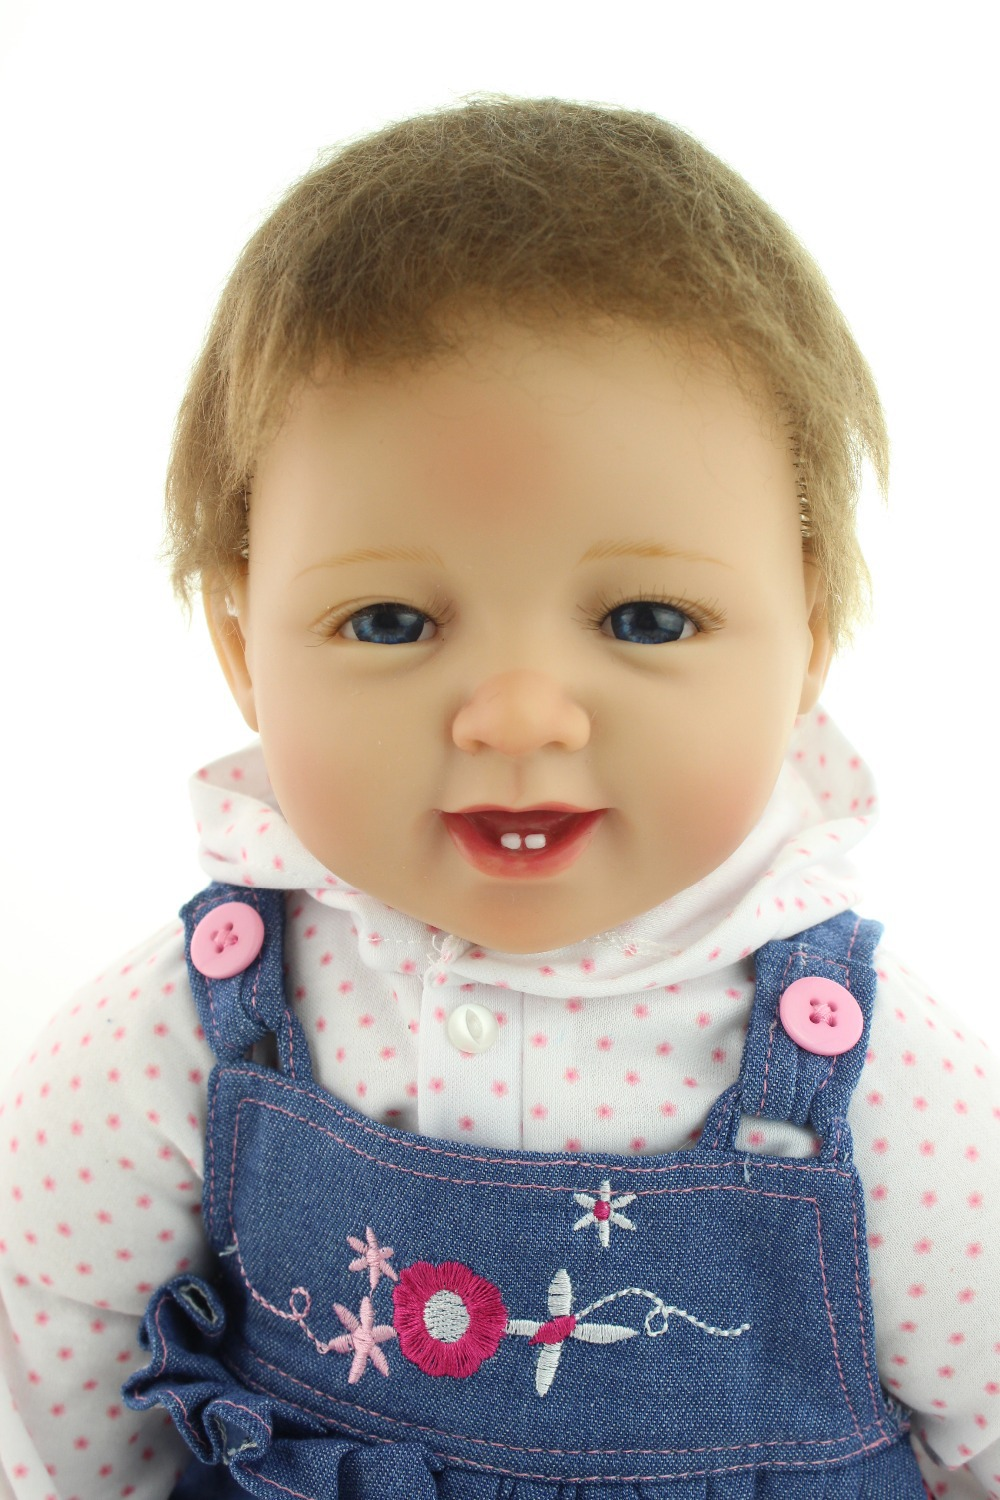 2015 NEW hot sale lifelike reborn baby doll lovely fashion doll Christmas gift lovely gifts